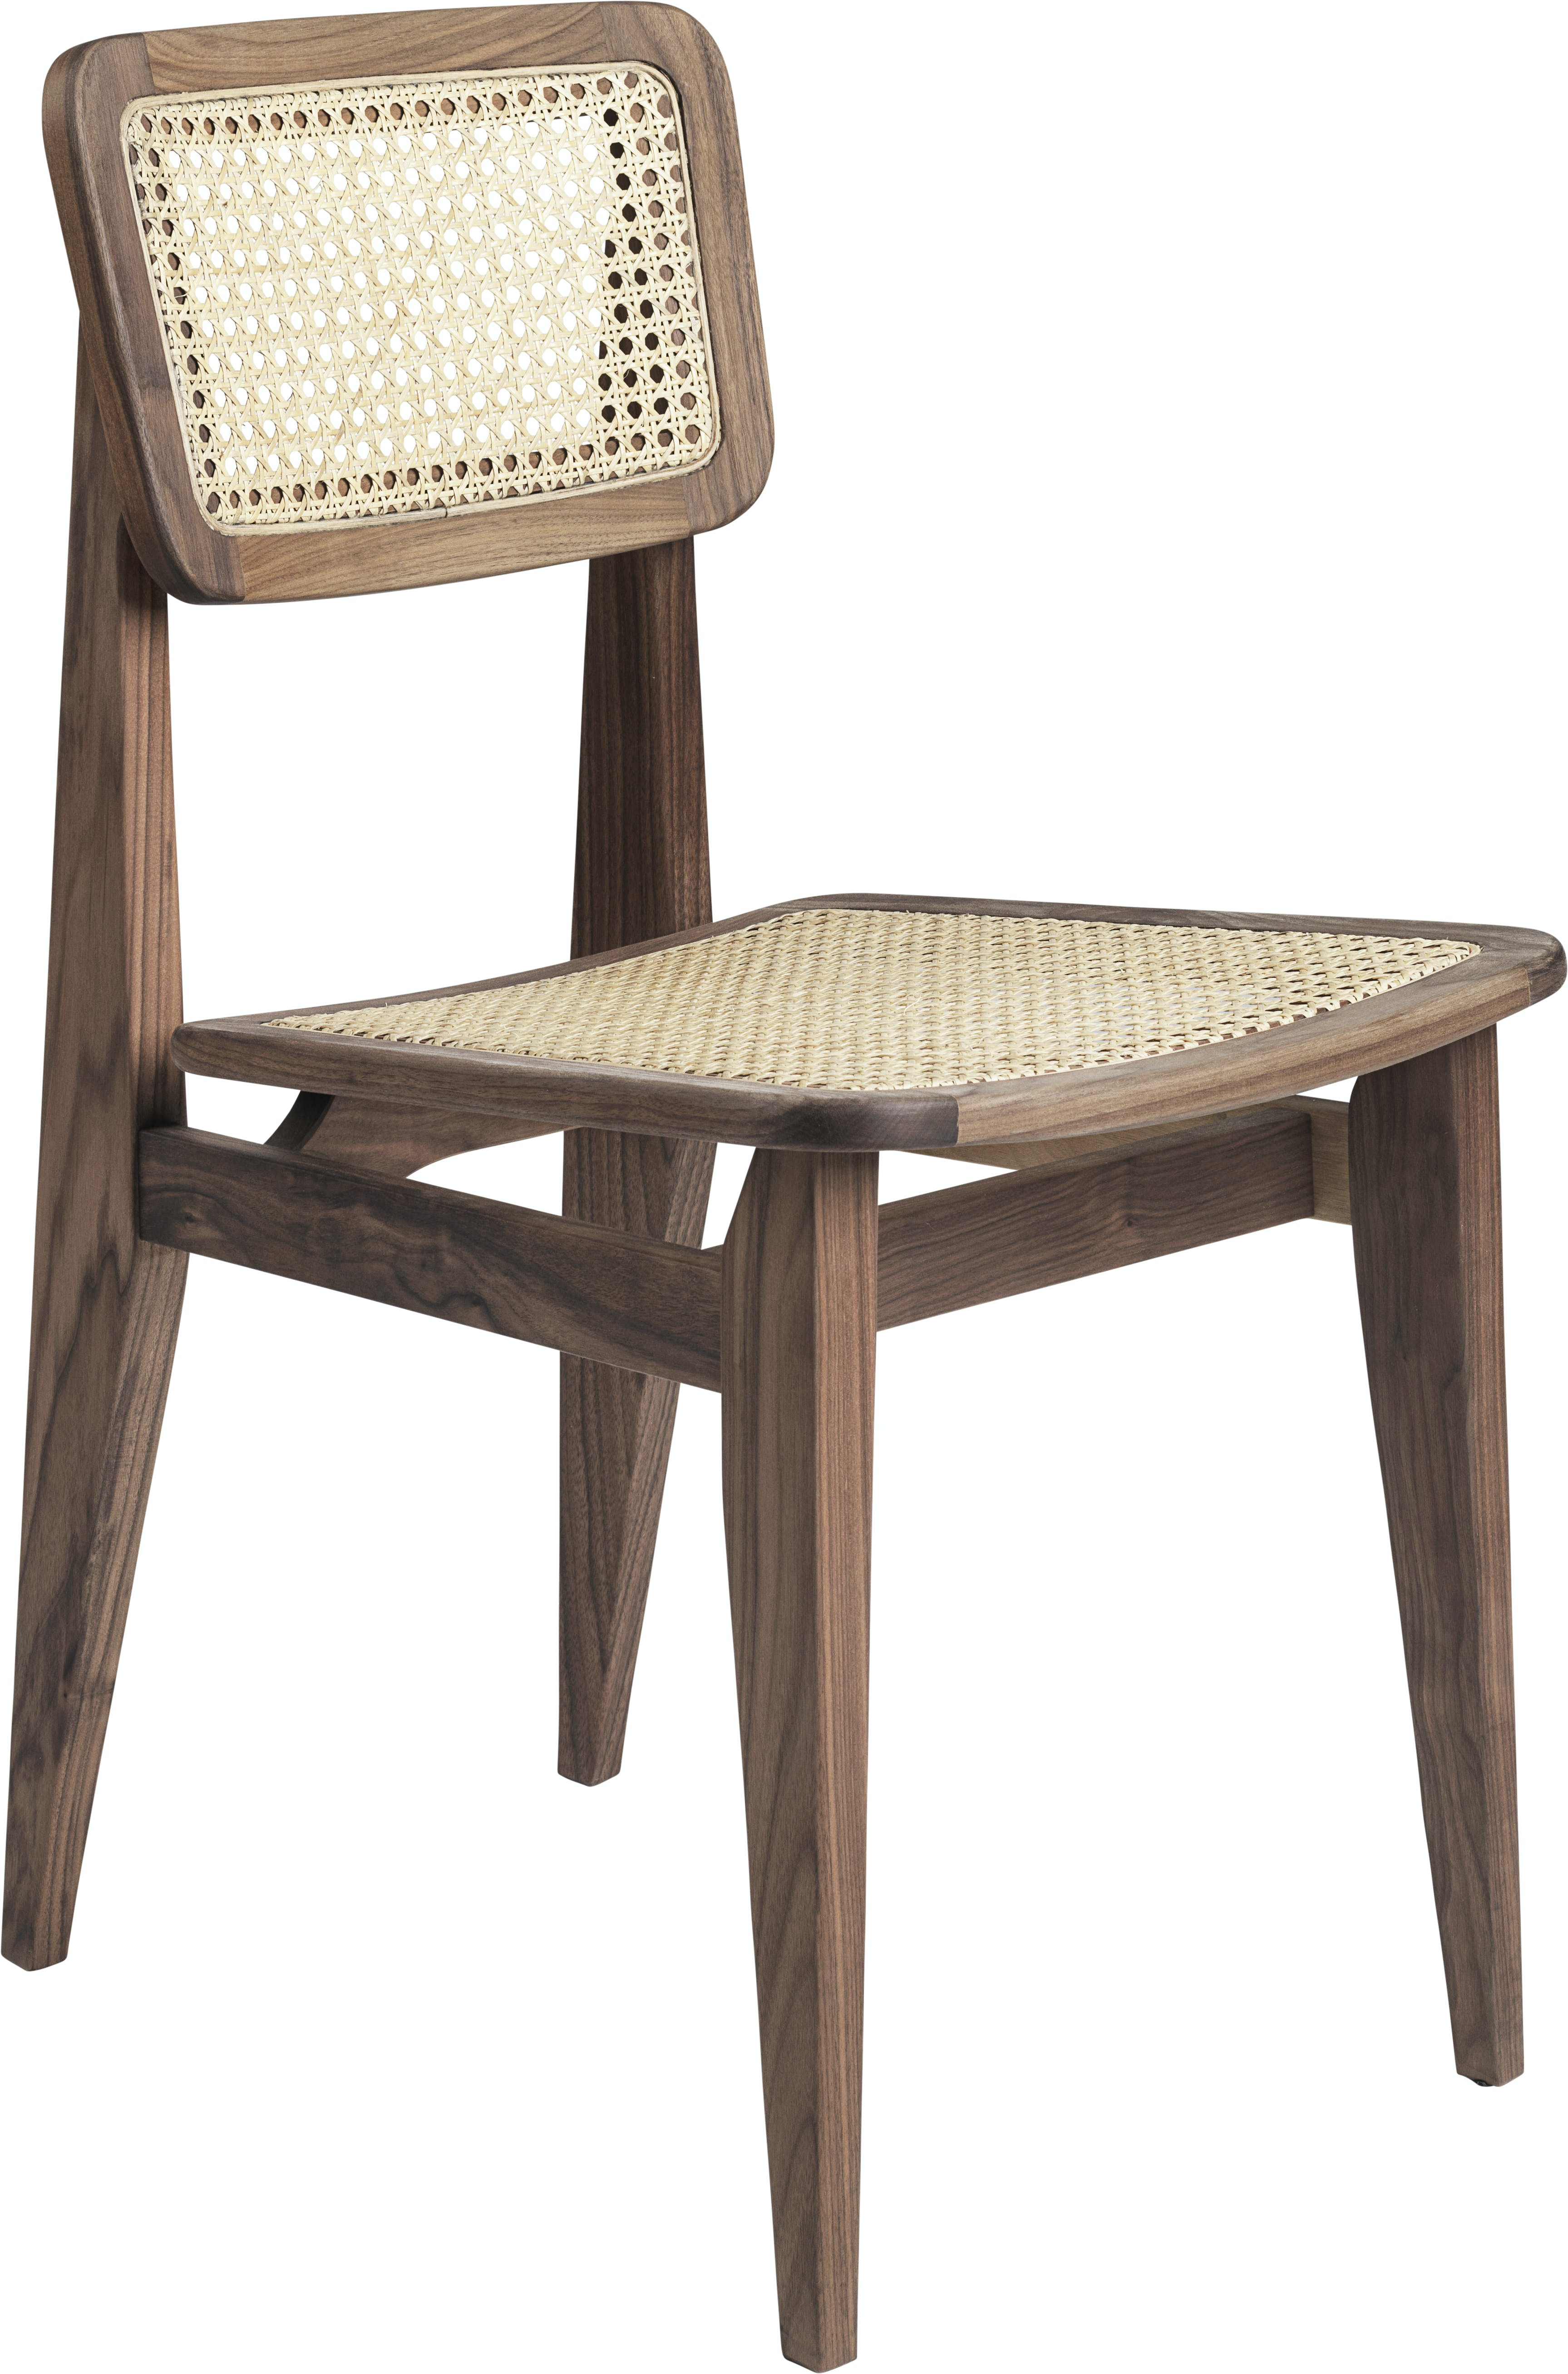 C Chair Dining Chair Wood Unupholstered French Cane American Walnut F3 Q